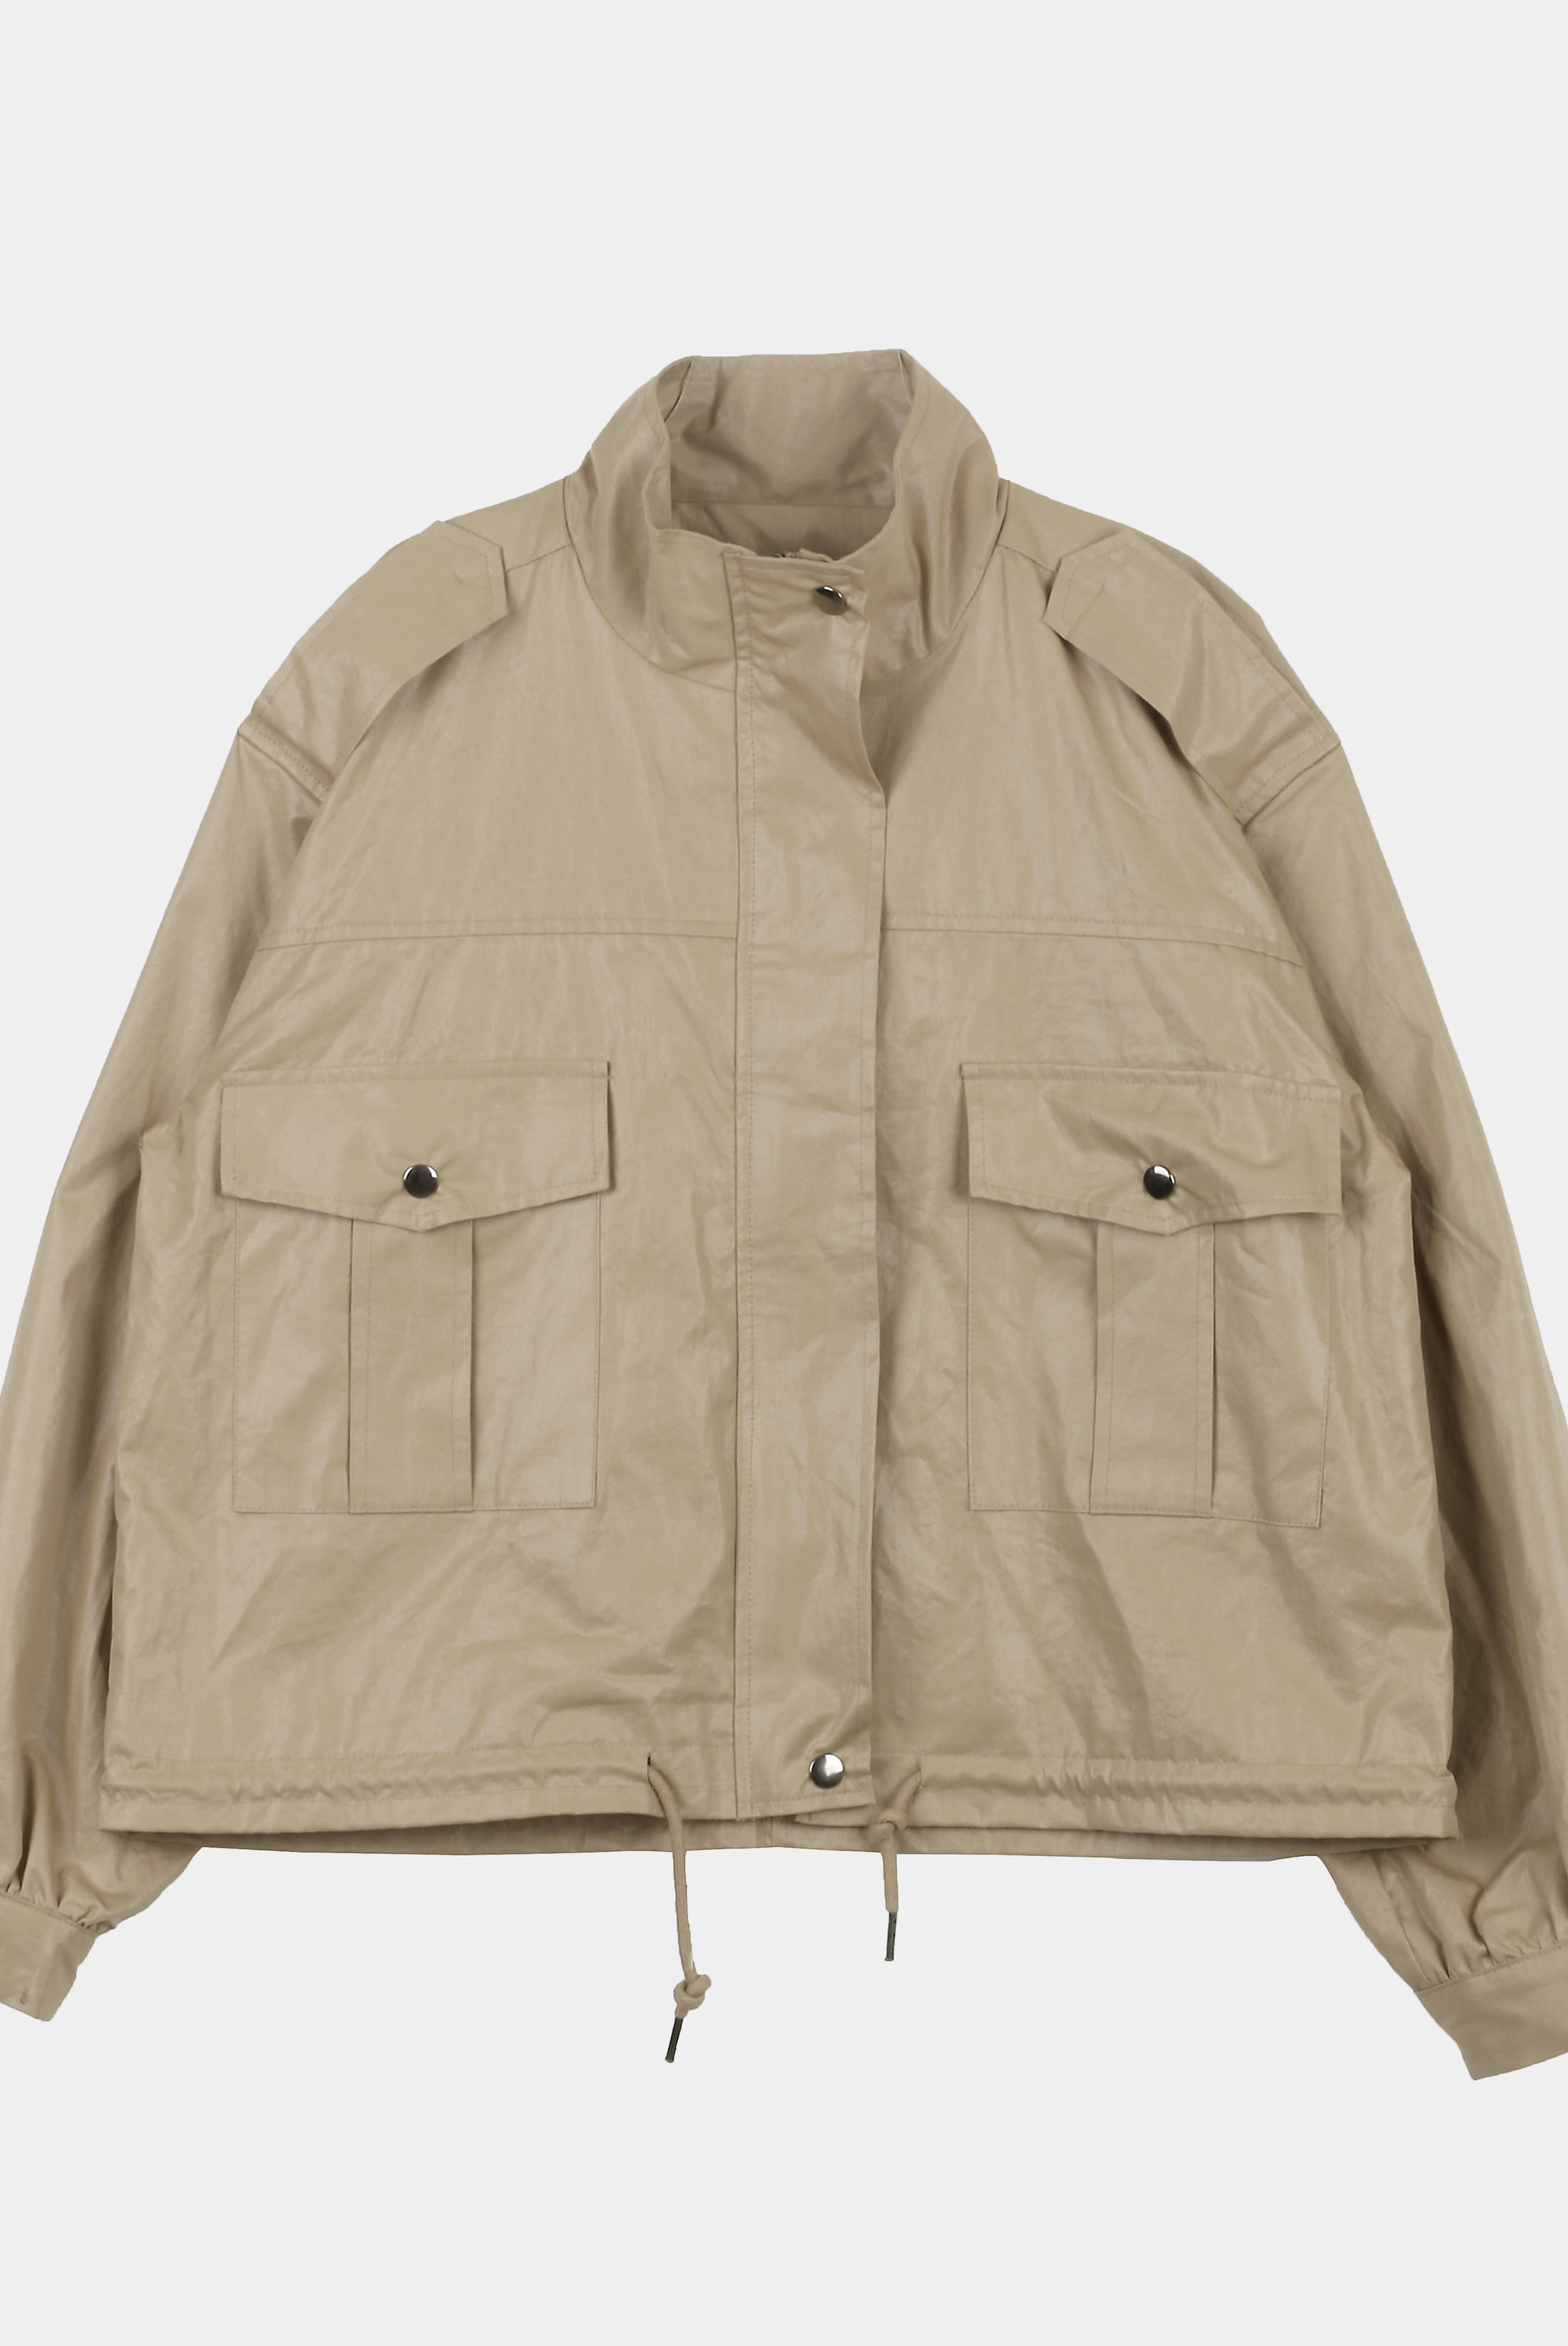 (W) Light_Cottied Field_Jacket